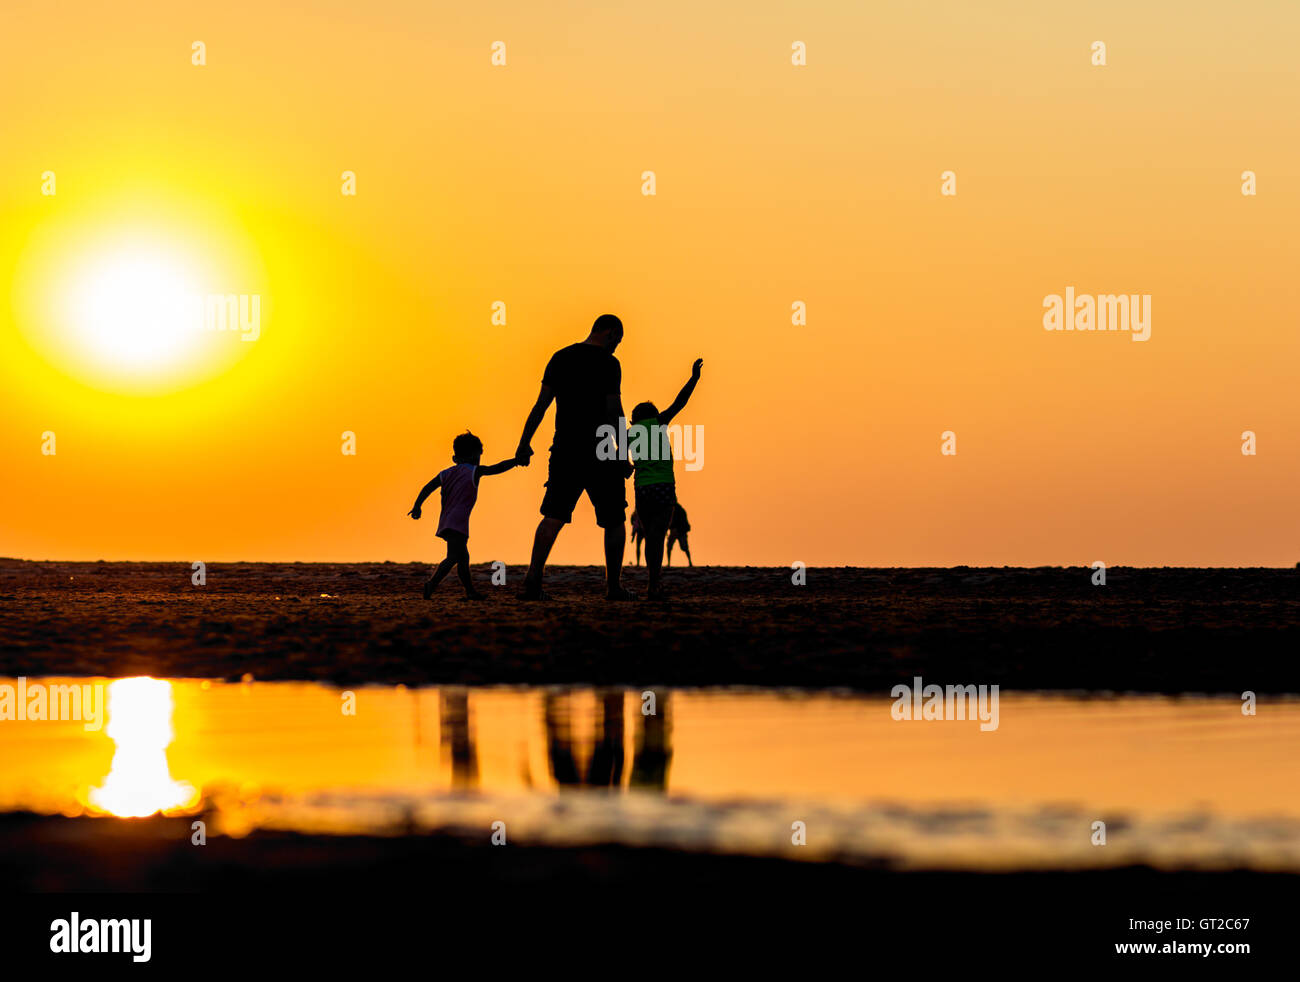 Kijkduin beach, the Netherlands - September 07, 2016: father and children on the beach during warmest September - Stock Image